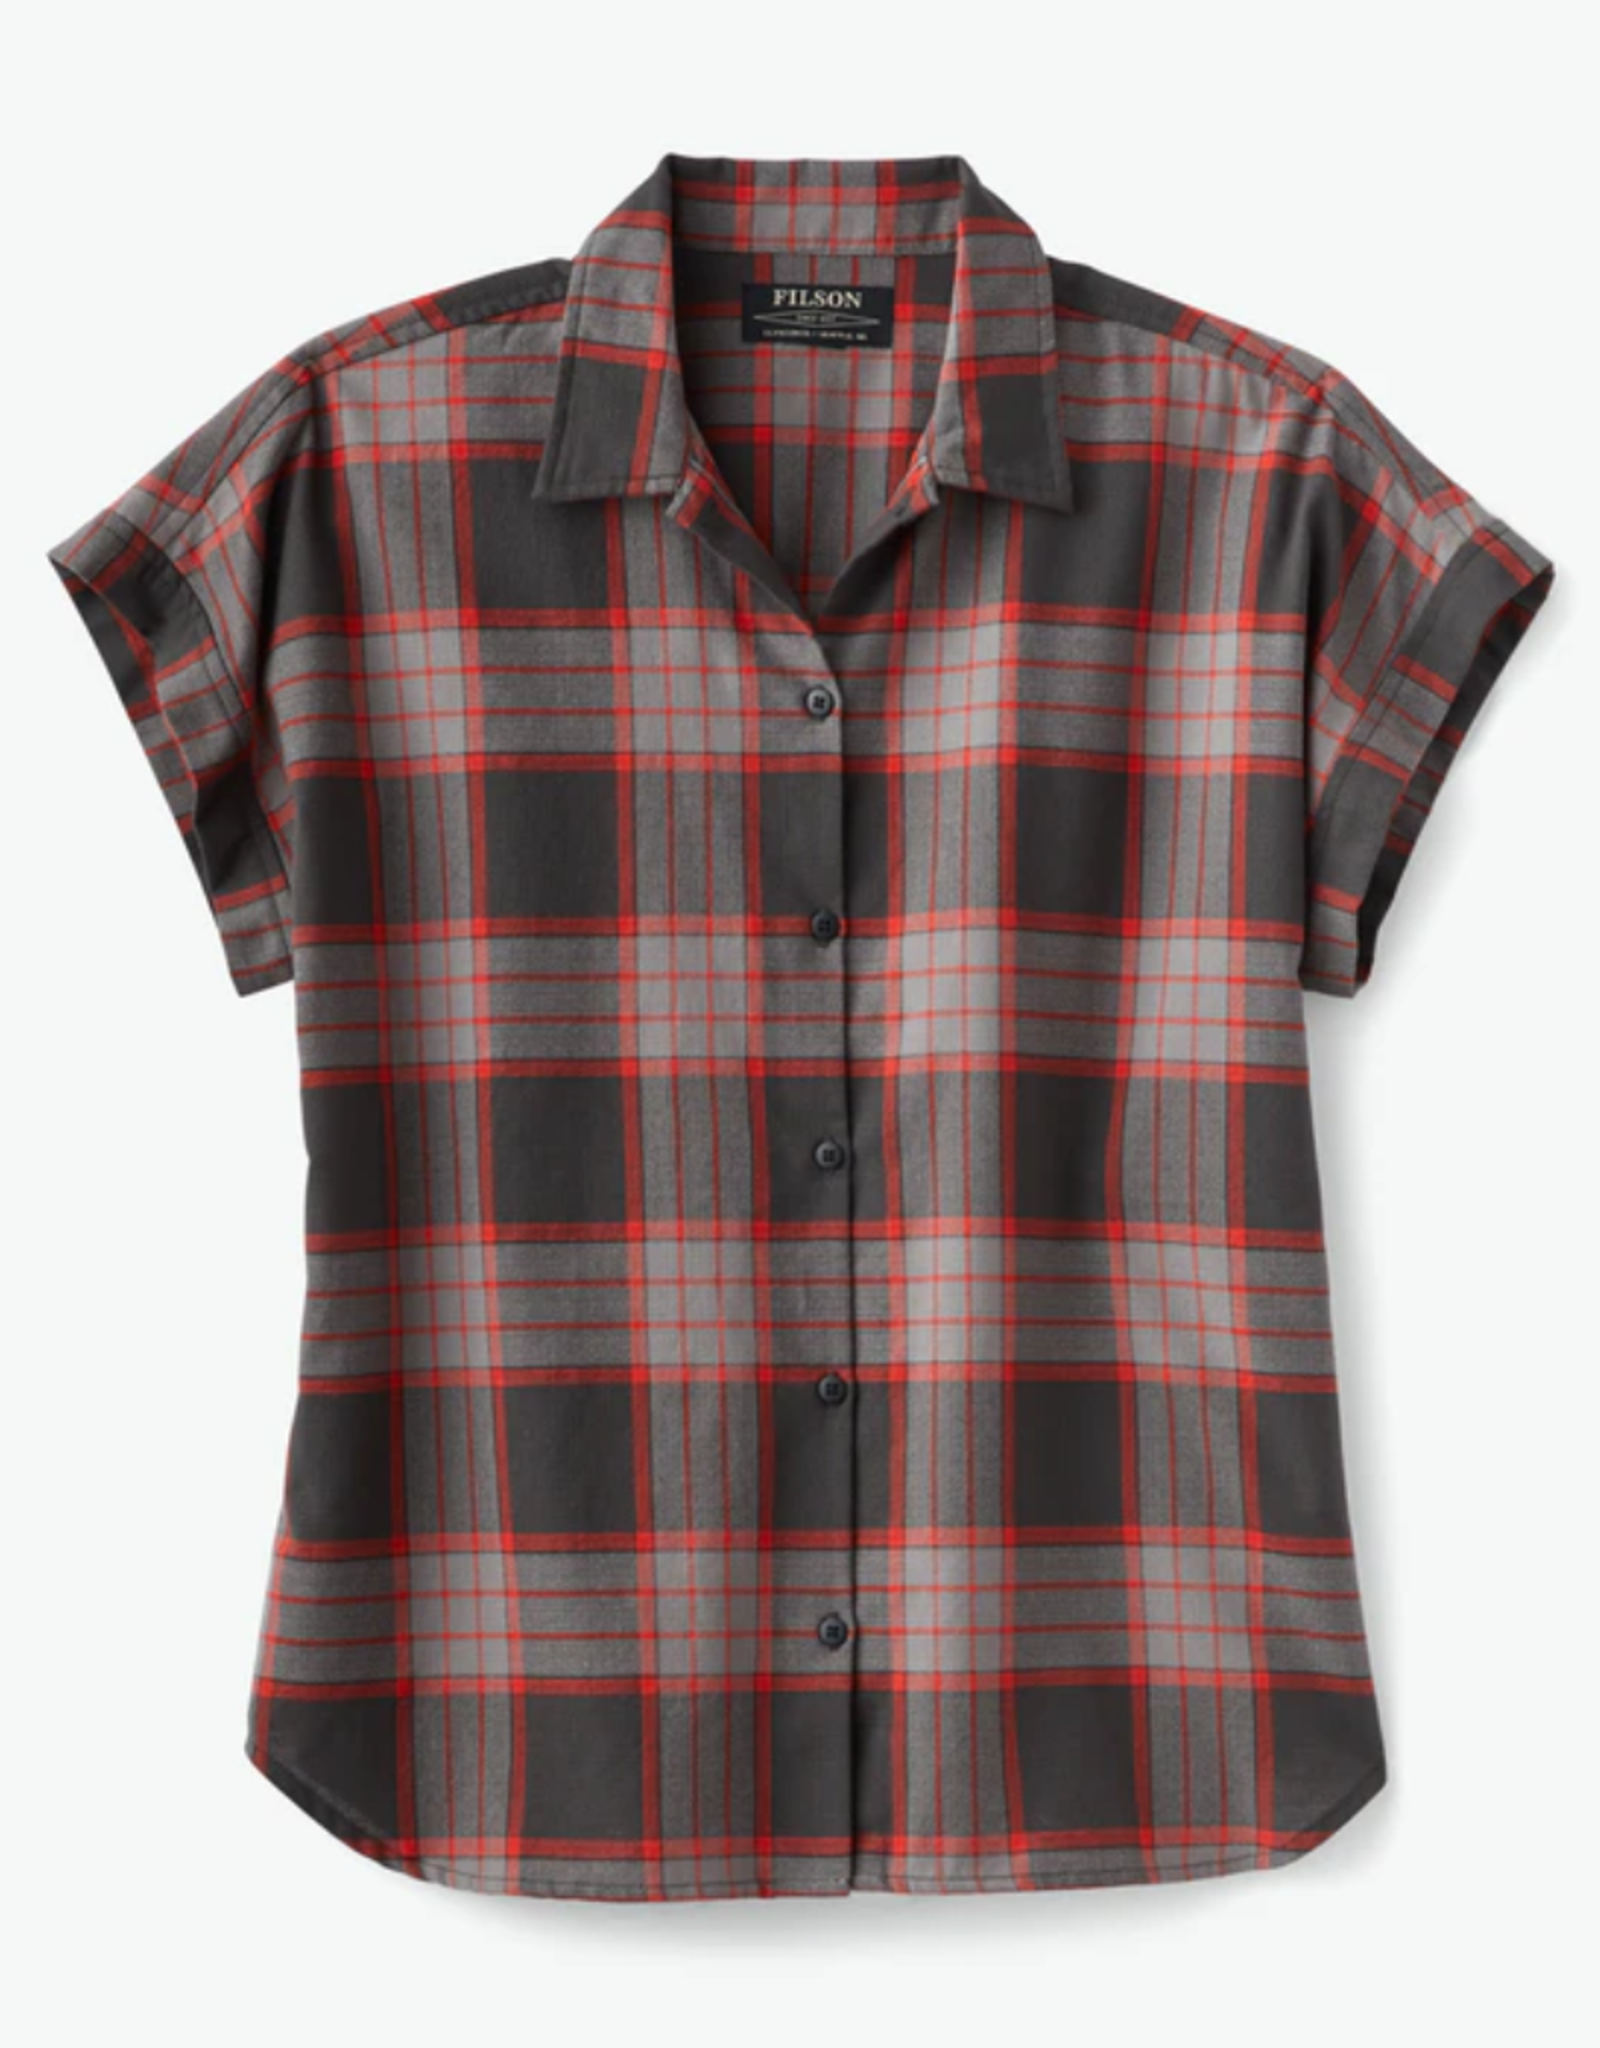 Filson Filson Northwest Camp Shirt